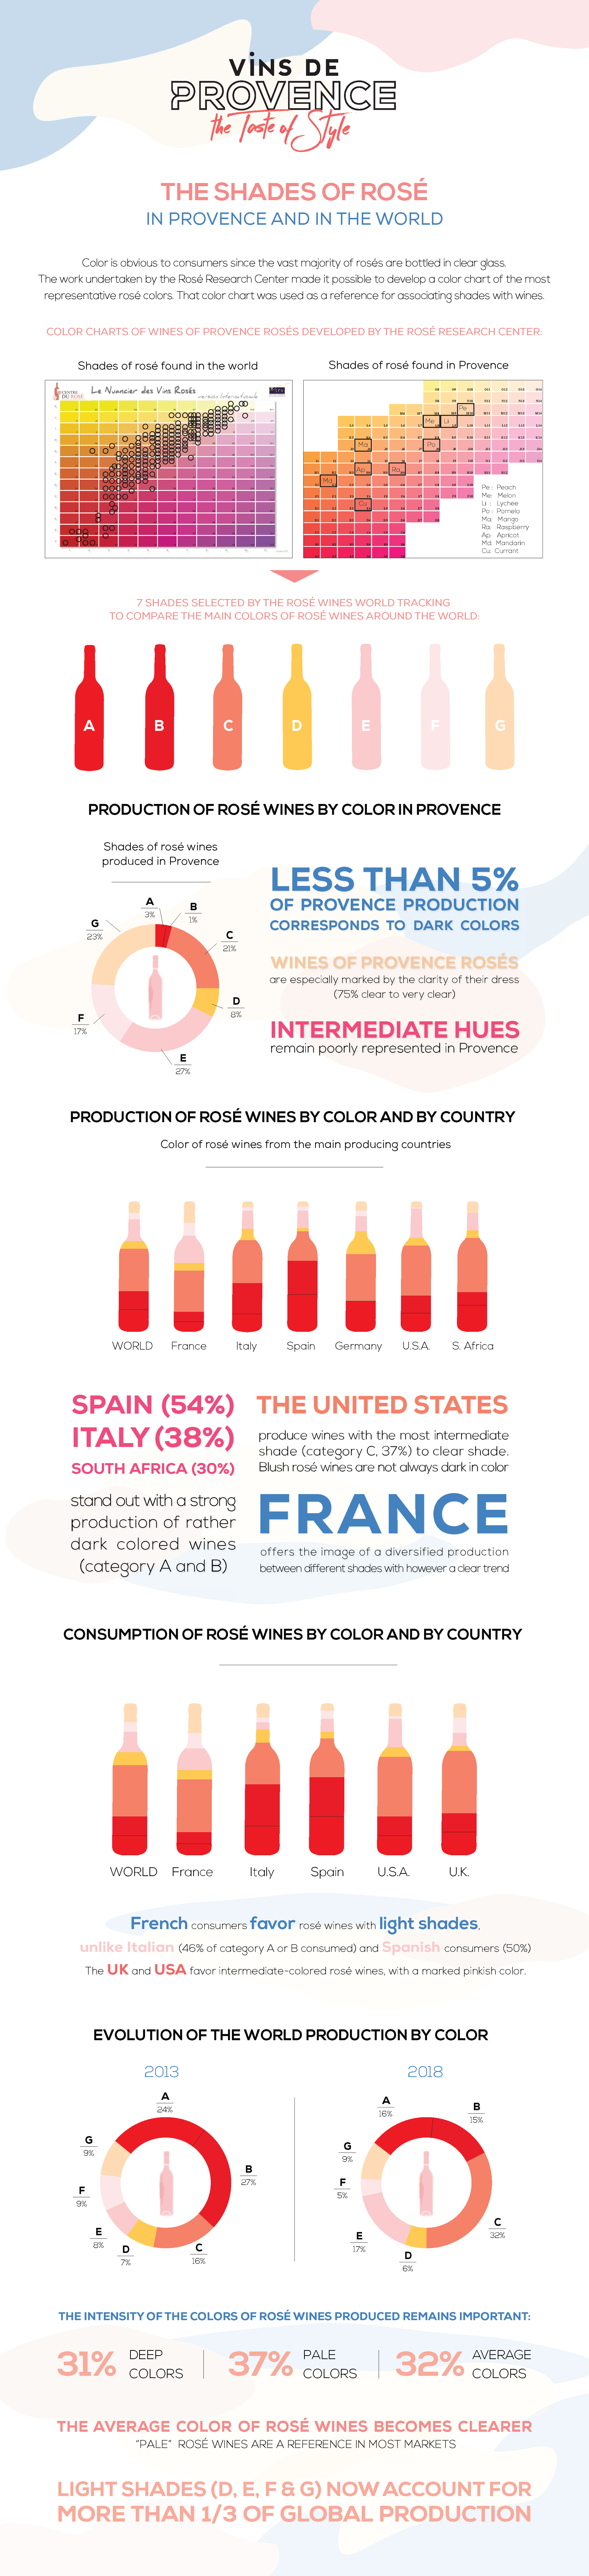 provence_infographics_final_06.26.2019.raw.png